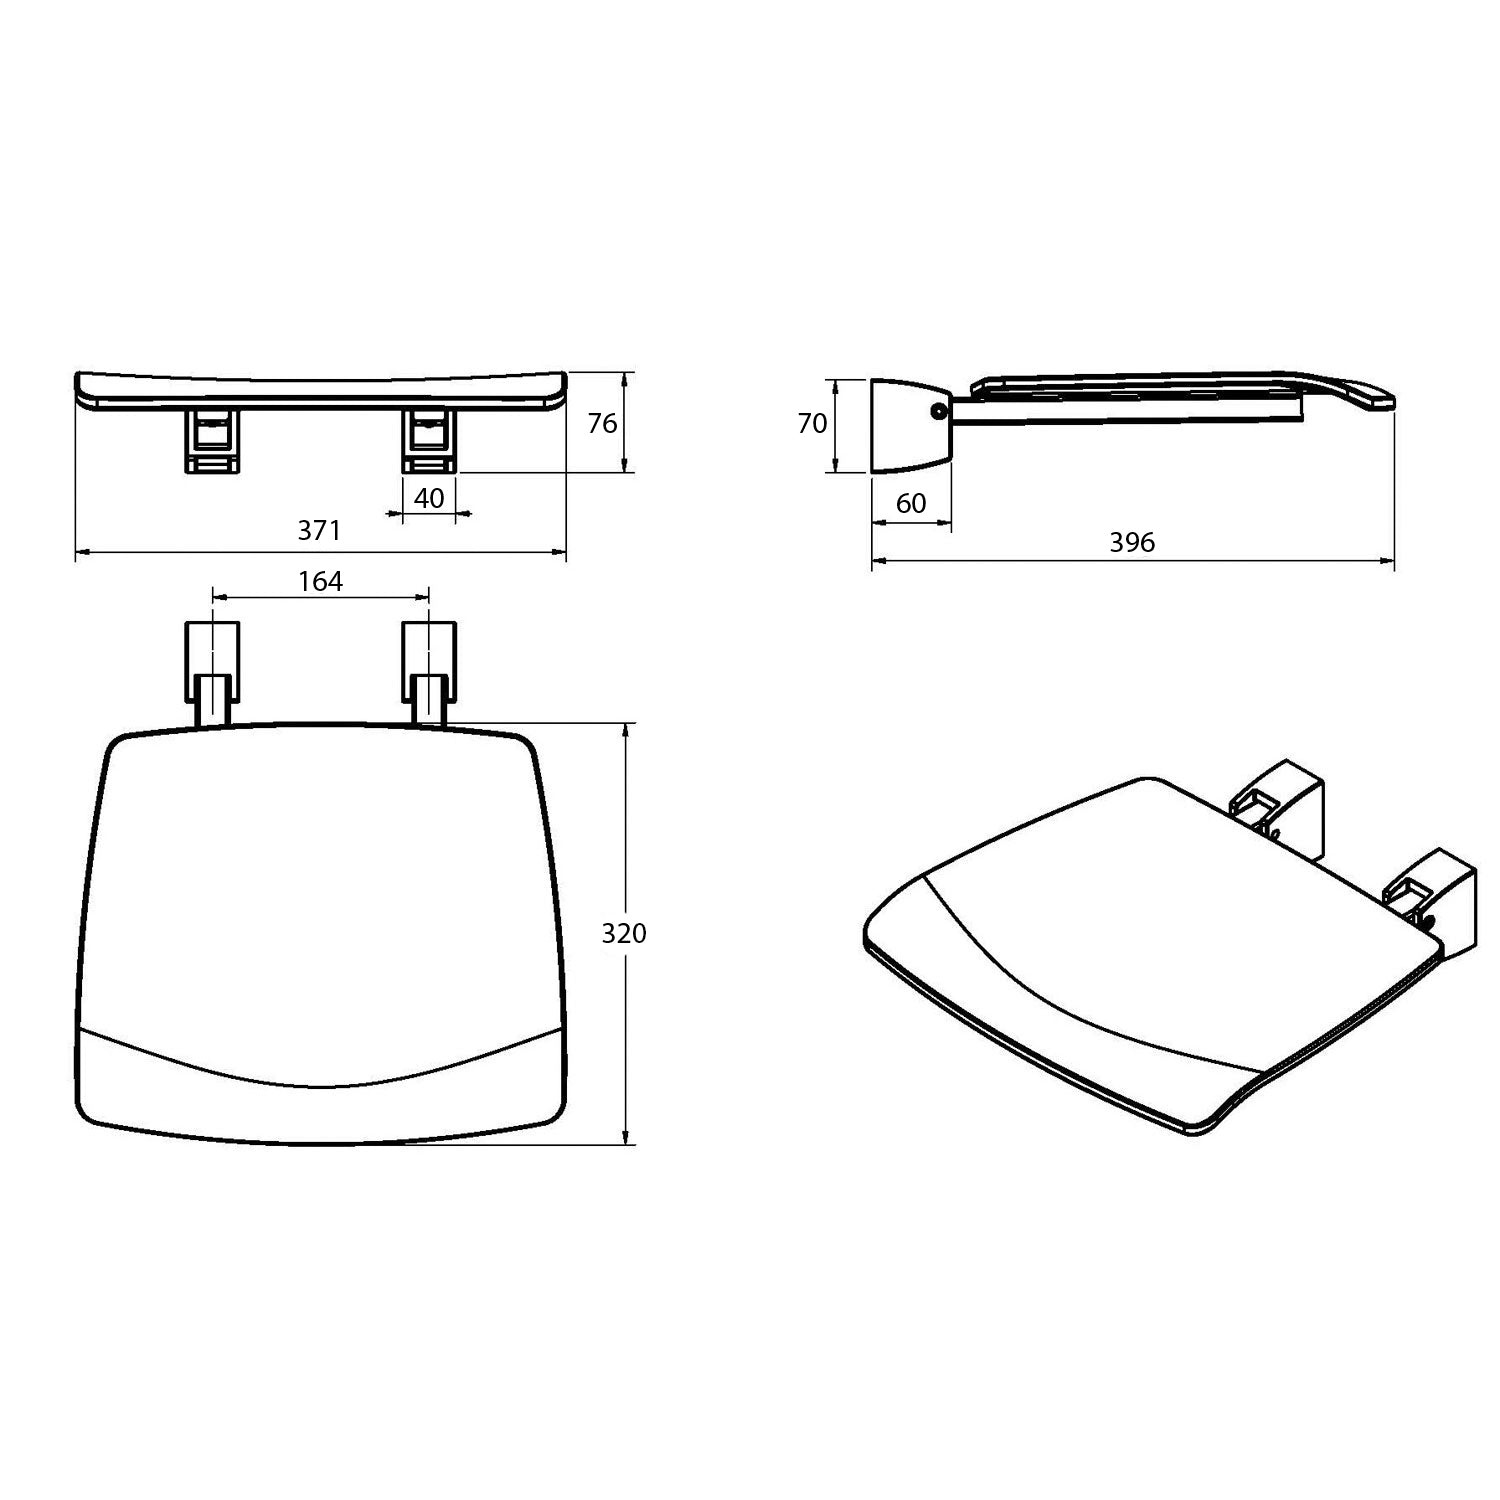 Esense Fixed Shower Seat with a black seat dimensional drawing